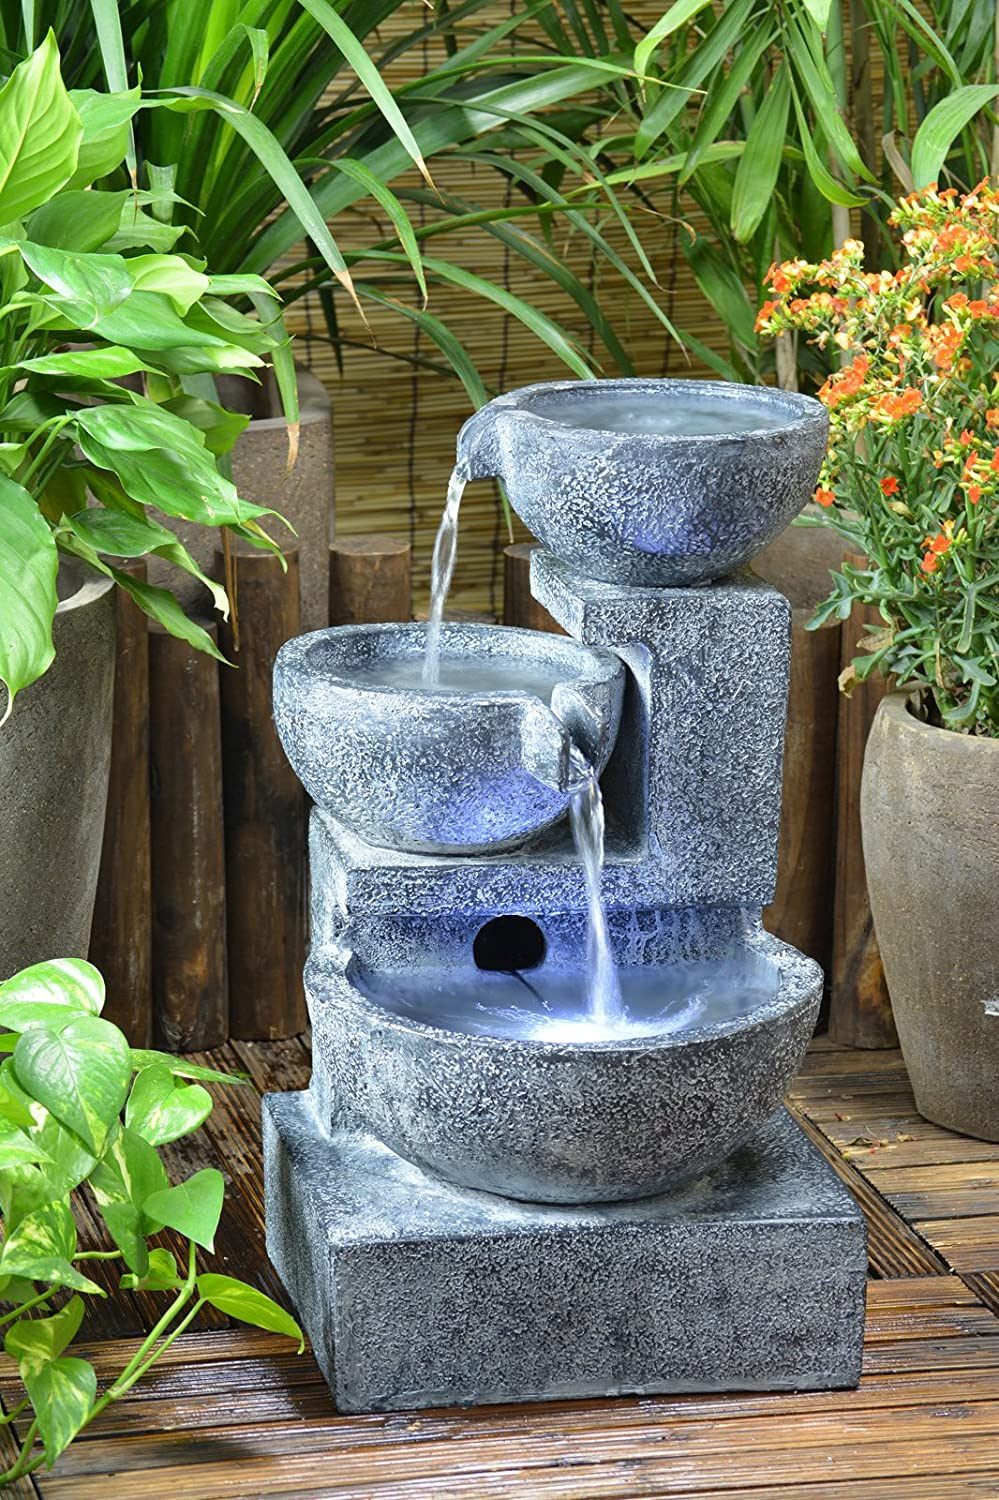 Beautiful solar powered garden fountains honest reviewz for Garden fountains and water features